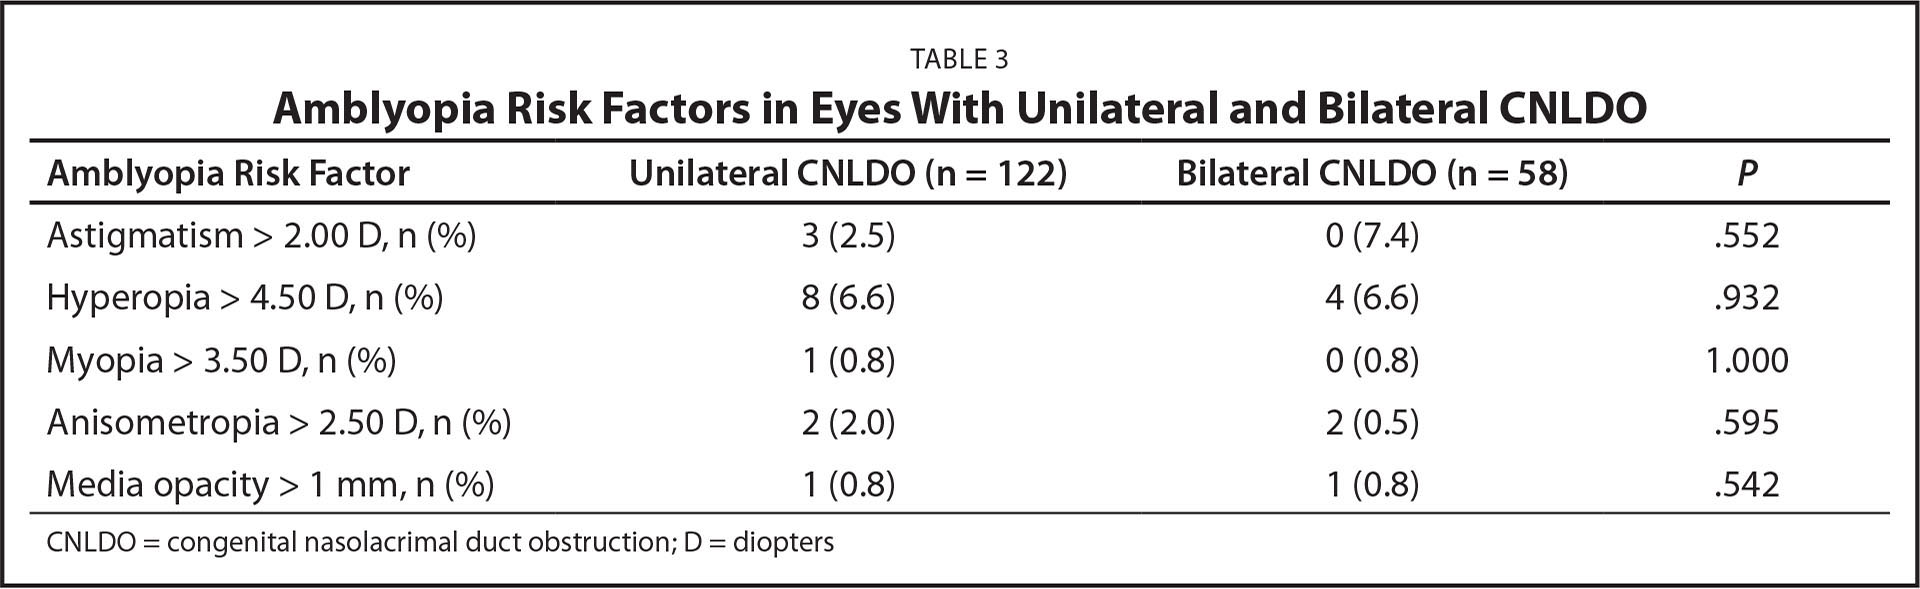 Amblyopia Risk Factors in Eyes With Unilateral and Bilateral CNLDO